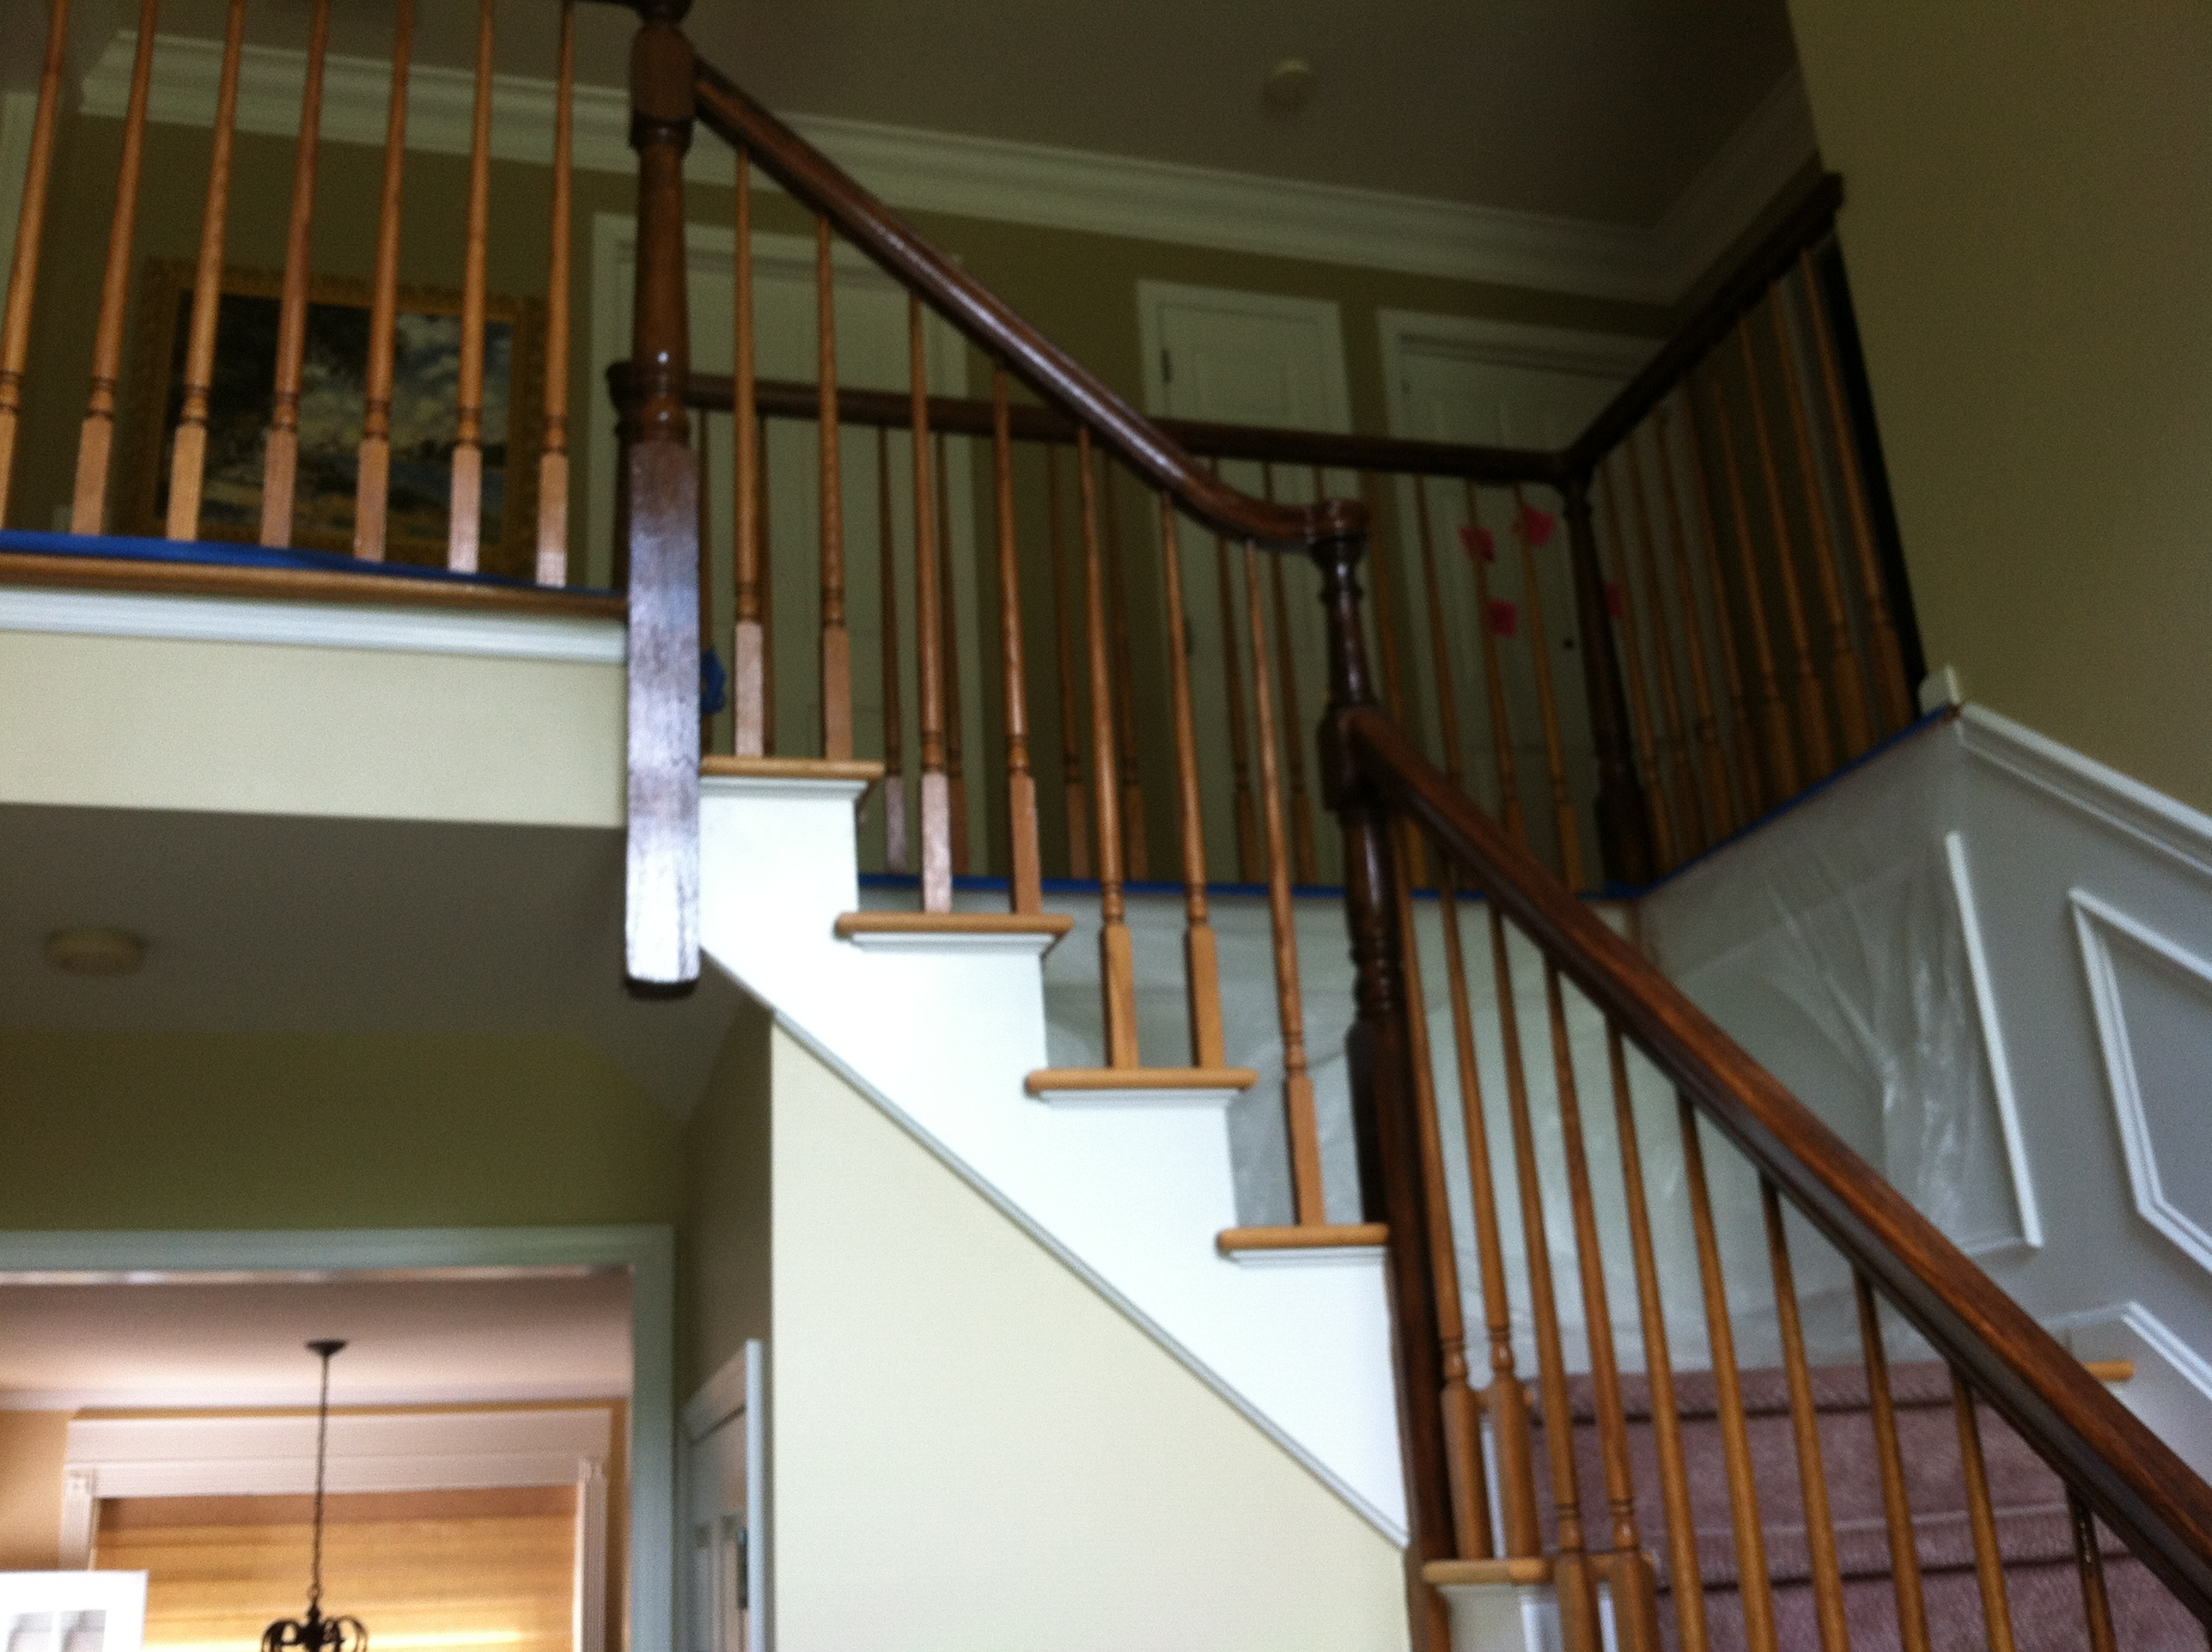 Replacing Pine Stair Treads With Red Oak Treads. We Are A Licensed And  Insured Flooring Contractor Specializing In Hardwood Flooring And Stairs.